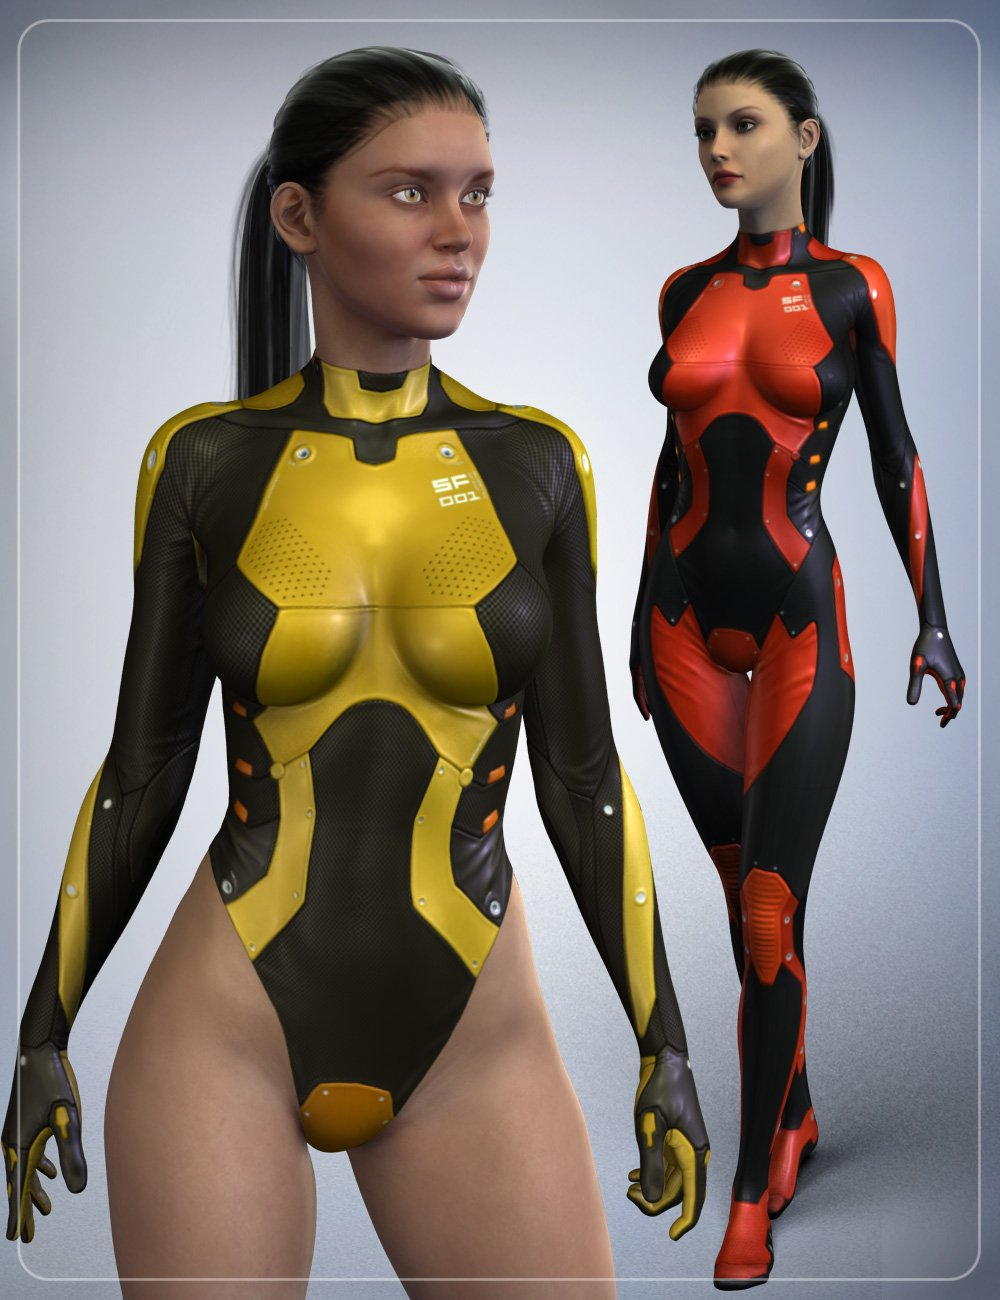 Sci-Fi Body Suit SF-001 by: smay, 3D Models by Daz 3D